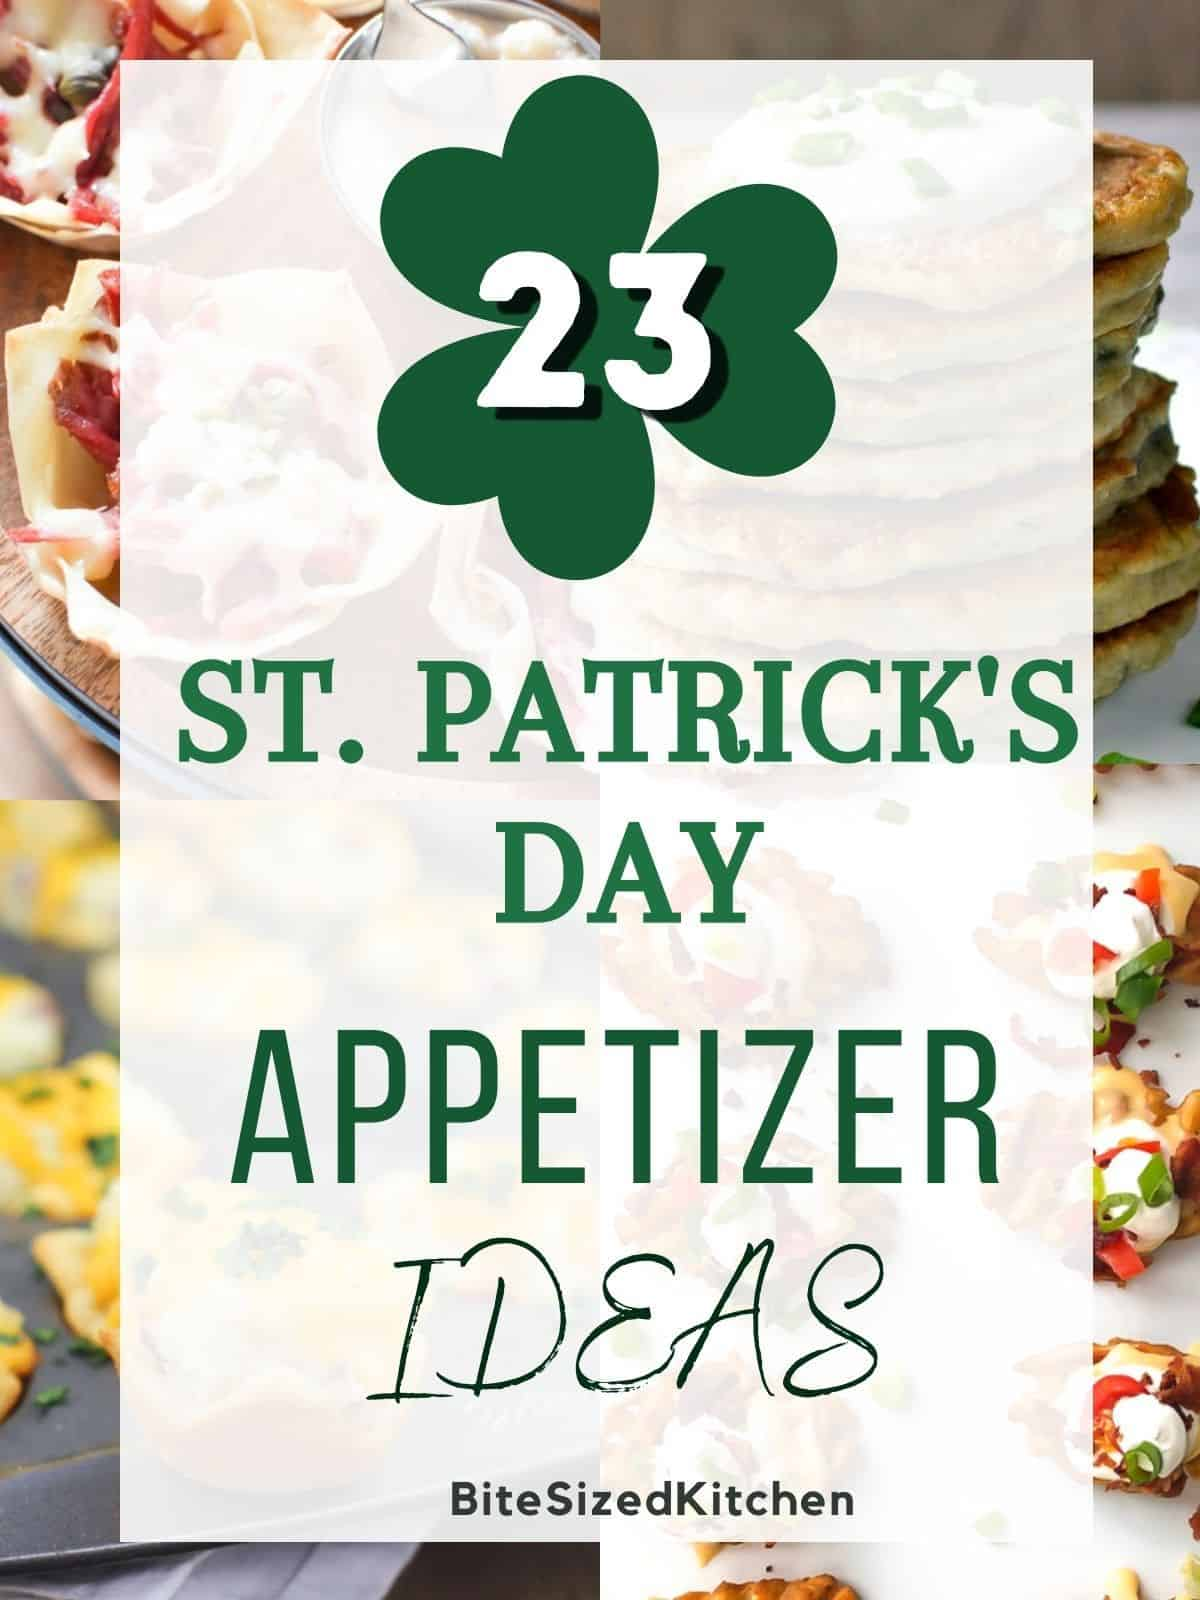 "saint patrick's day appetizers with green text overlay saying ""St. PAtty's day appetizer ideas""."